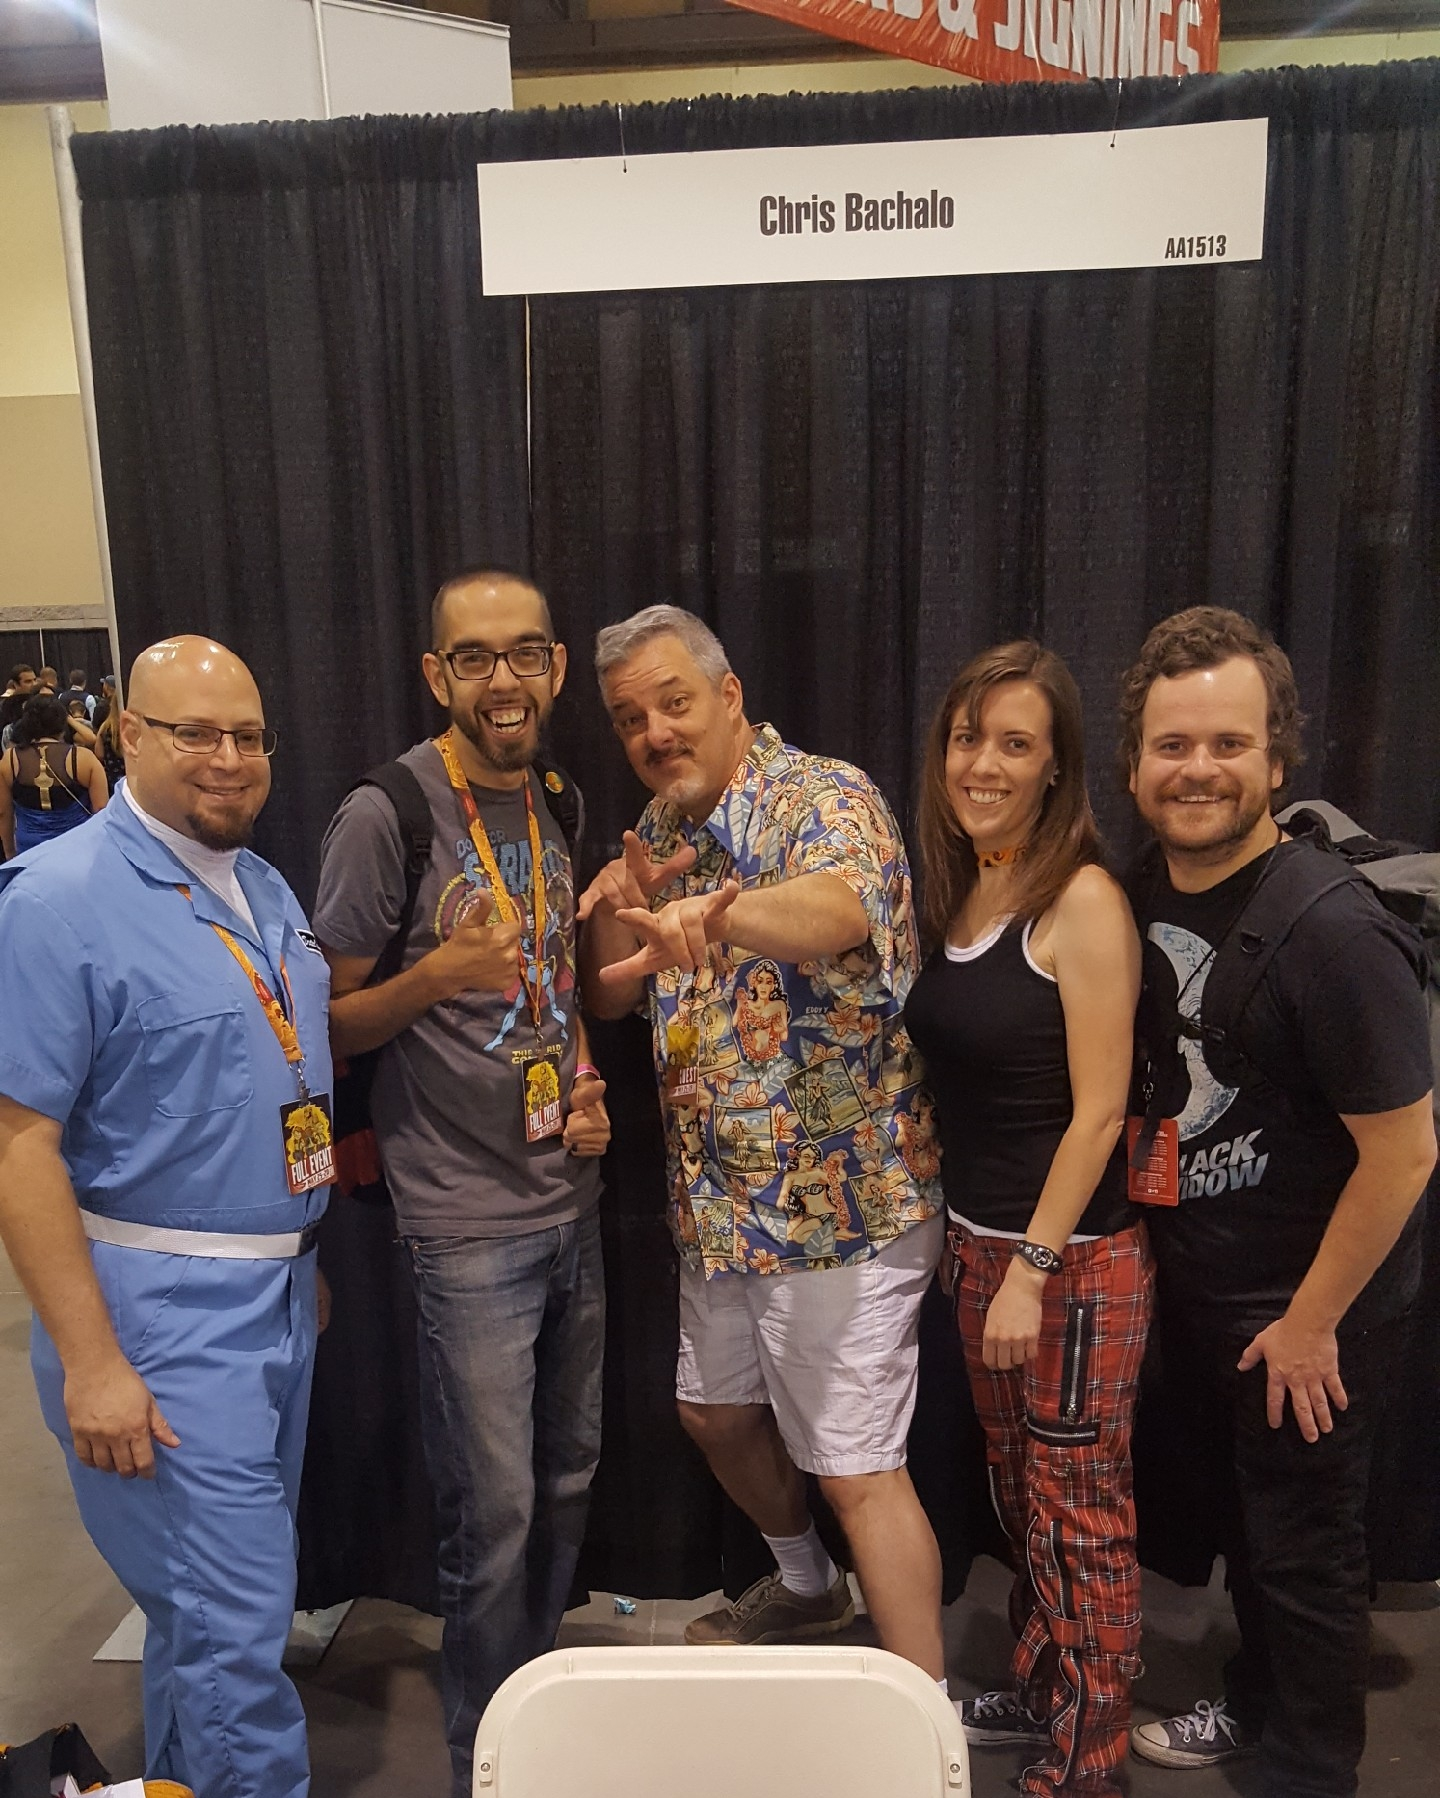 - We got to meet and nerd out with some of our favorite artist! Here we are with Chris Bachalo (Doctor Strange)! Hey, there's Shannon!